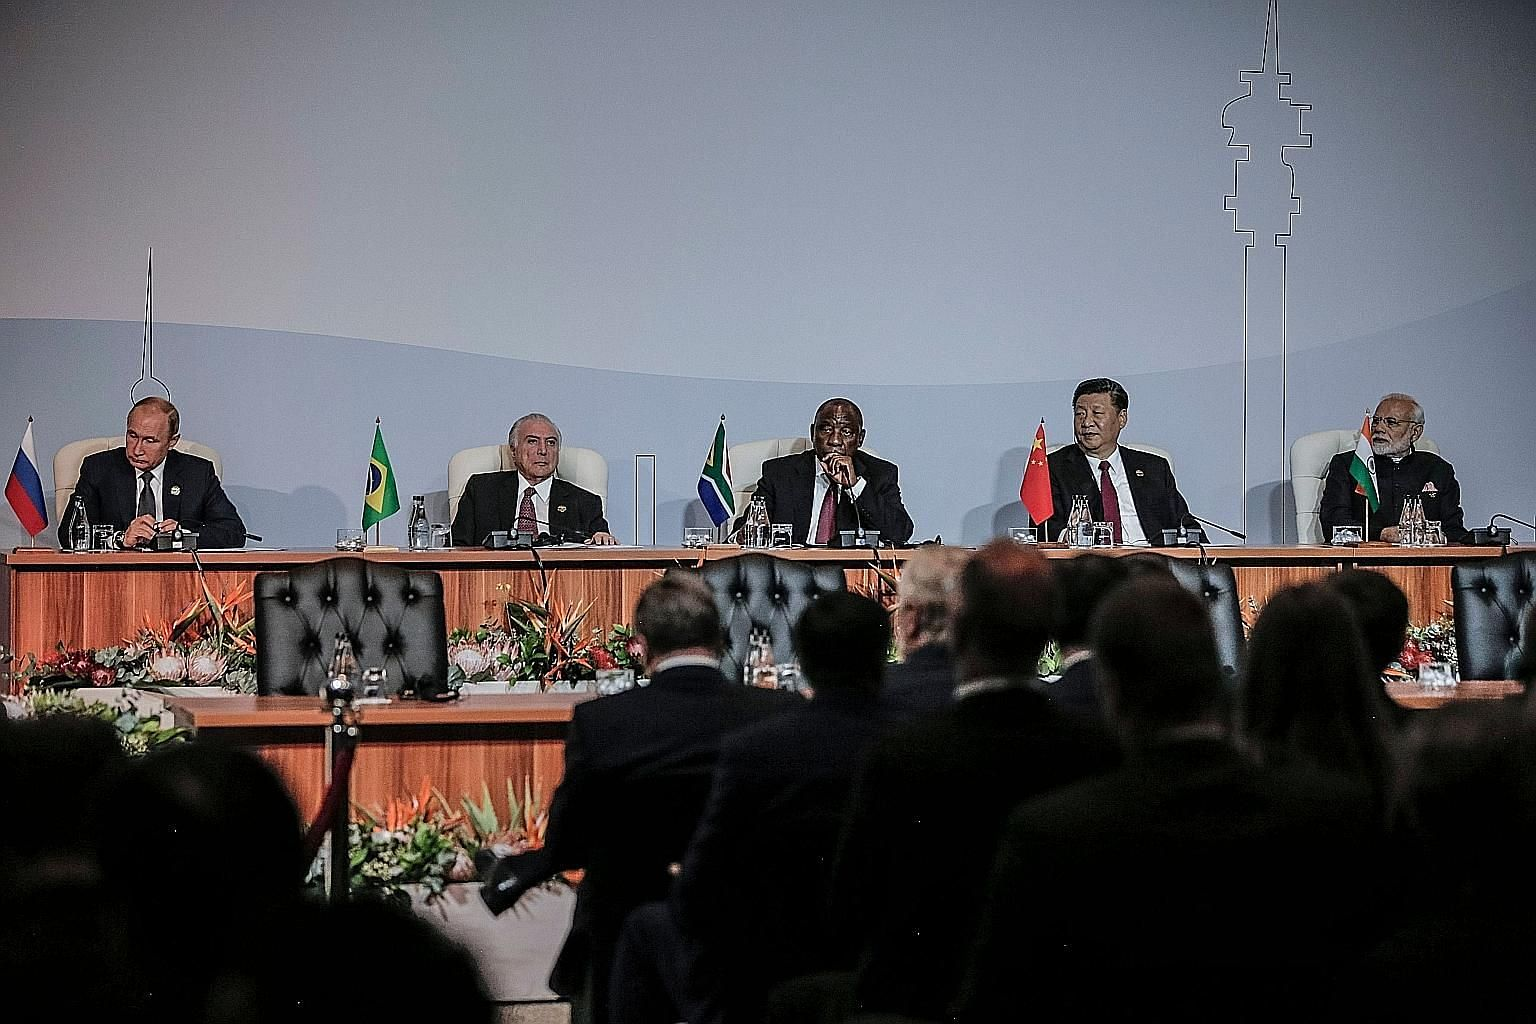 (From left) Brics leaders Vladimir Putin of Russia, Michel Temer of Brazil, Cyril Ramaphosa of South Africa, Xi Jinping of China and Narendra Modi of India attending the 10th Brics summit on Thursday.